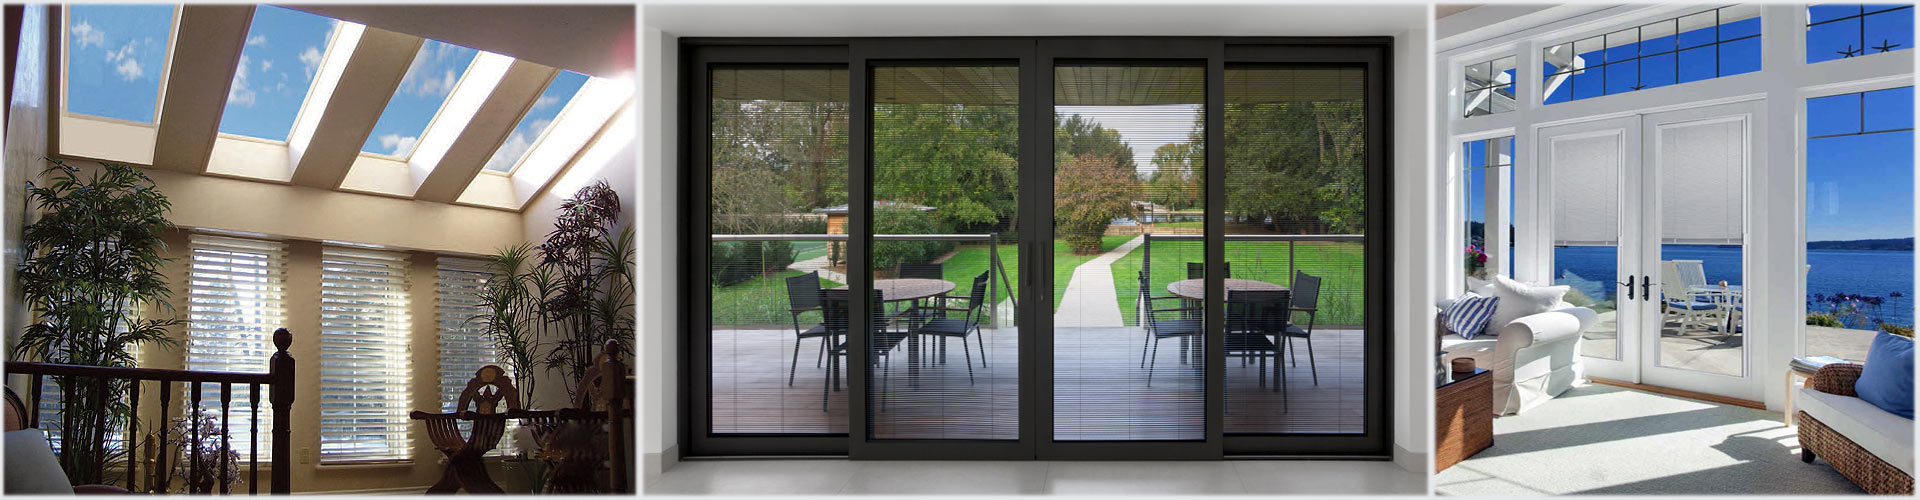 Patio-Door-and-Skylight-Banner